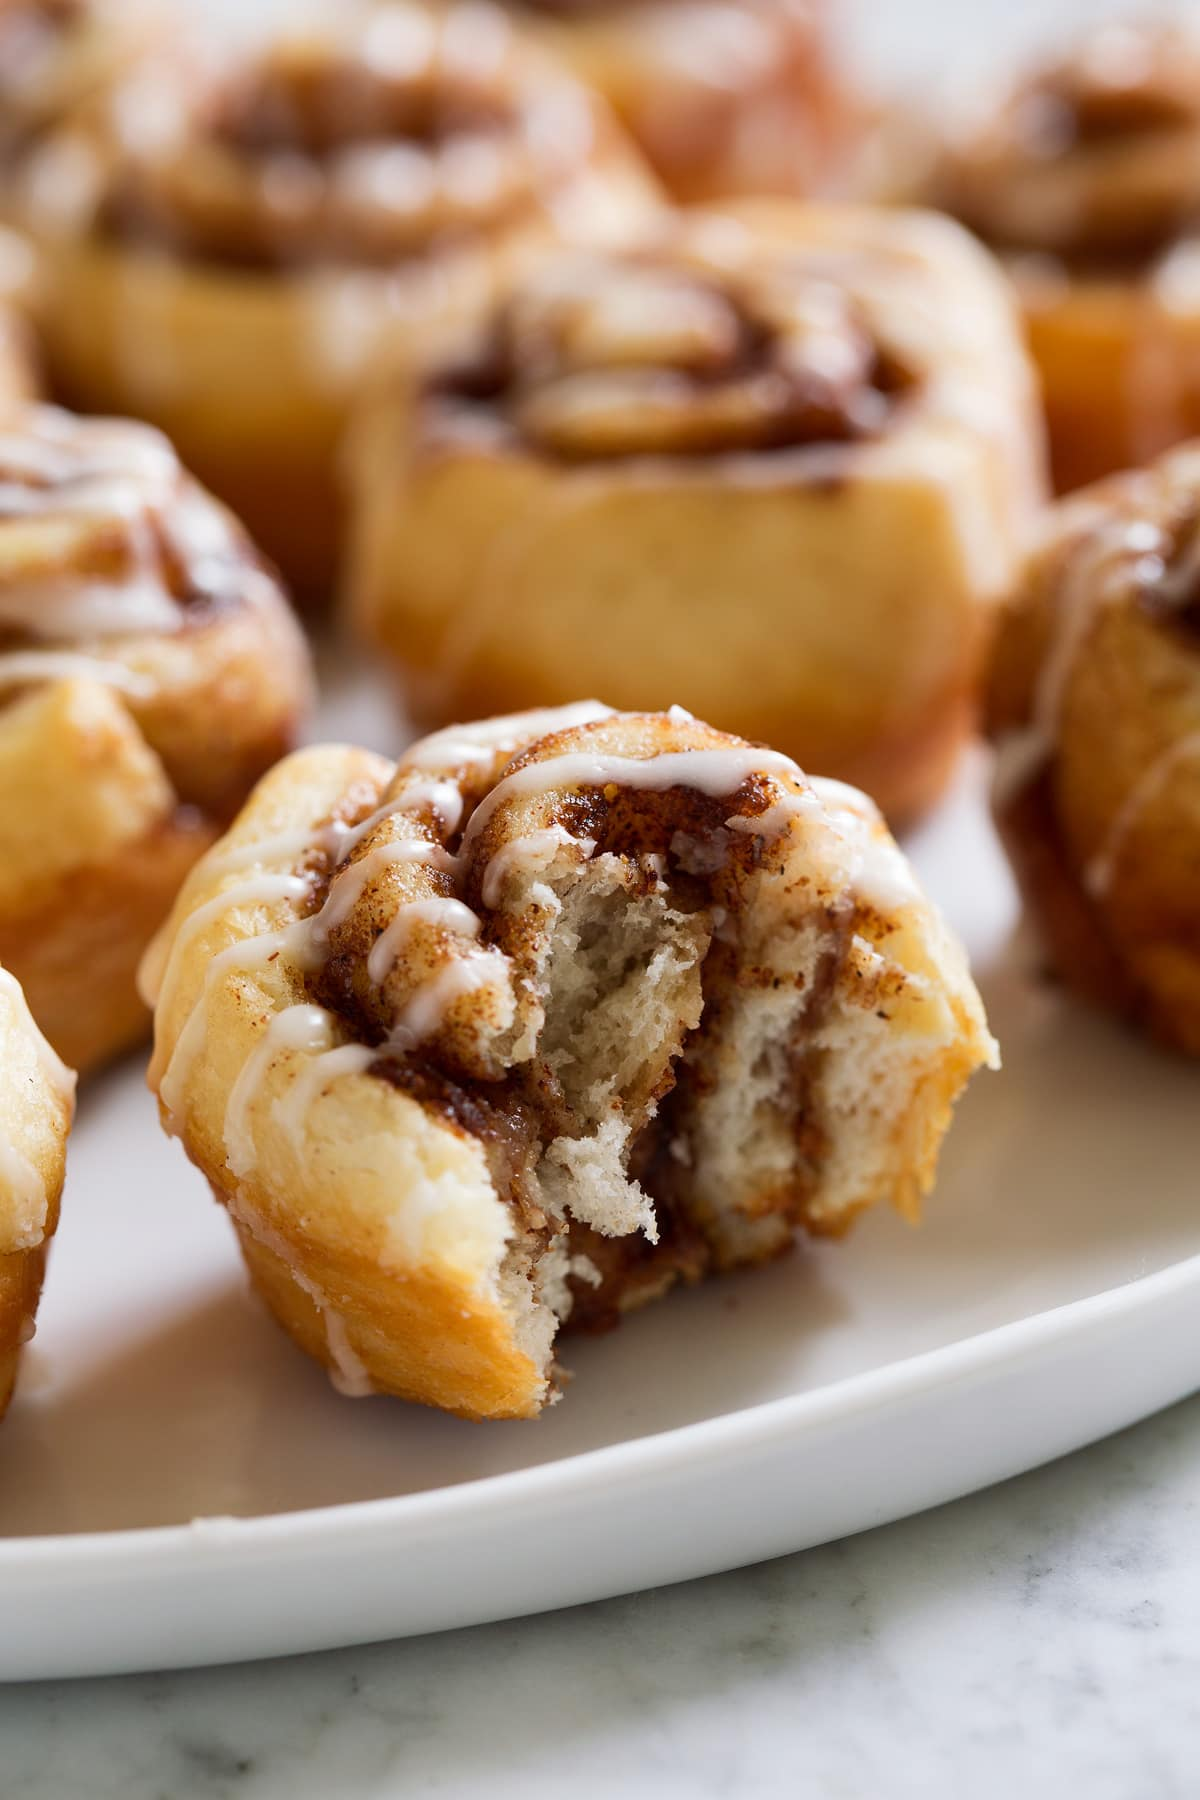 Image of mini cinnamon roll shown bitten into.